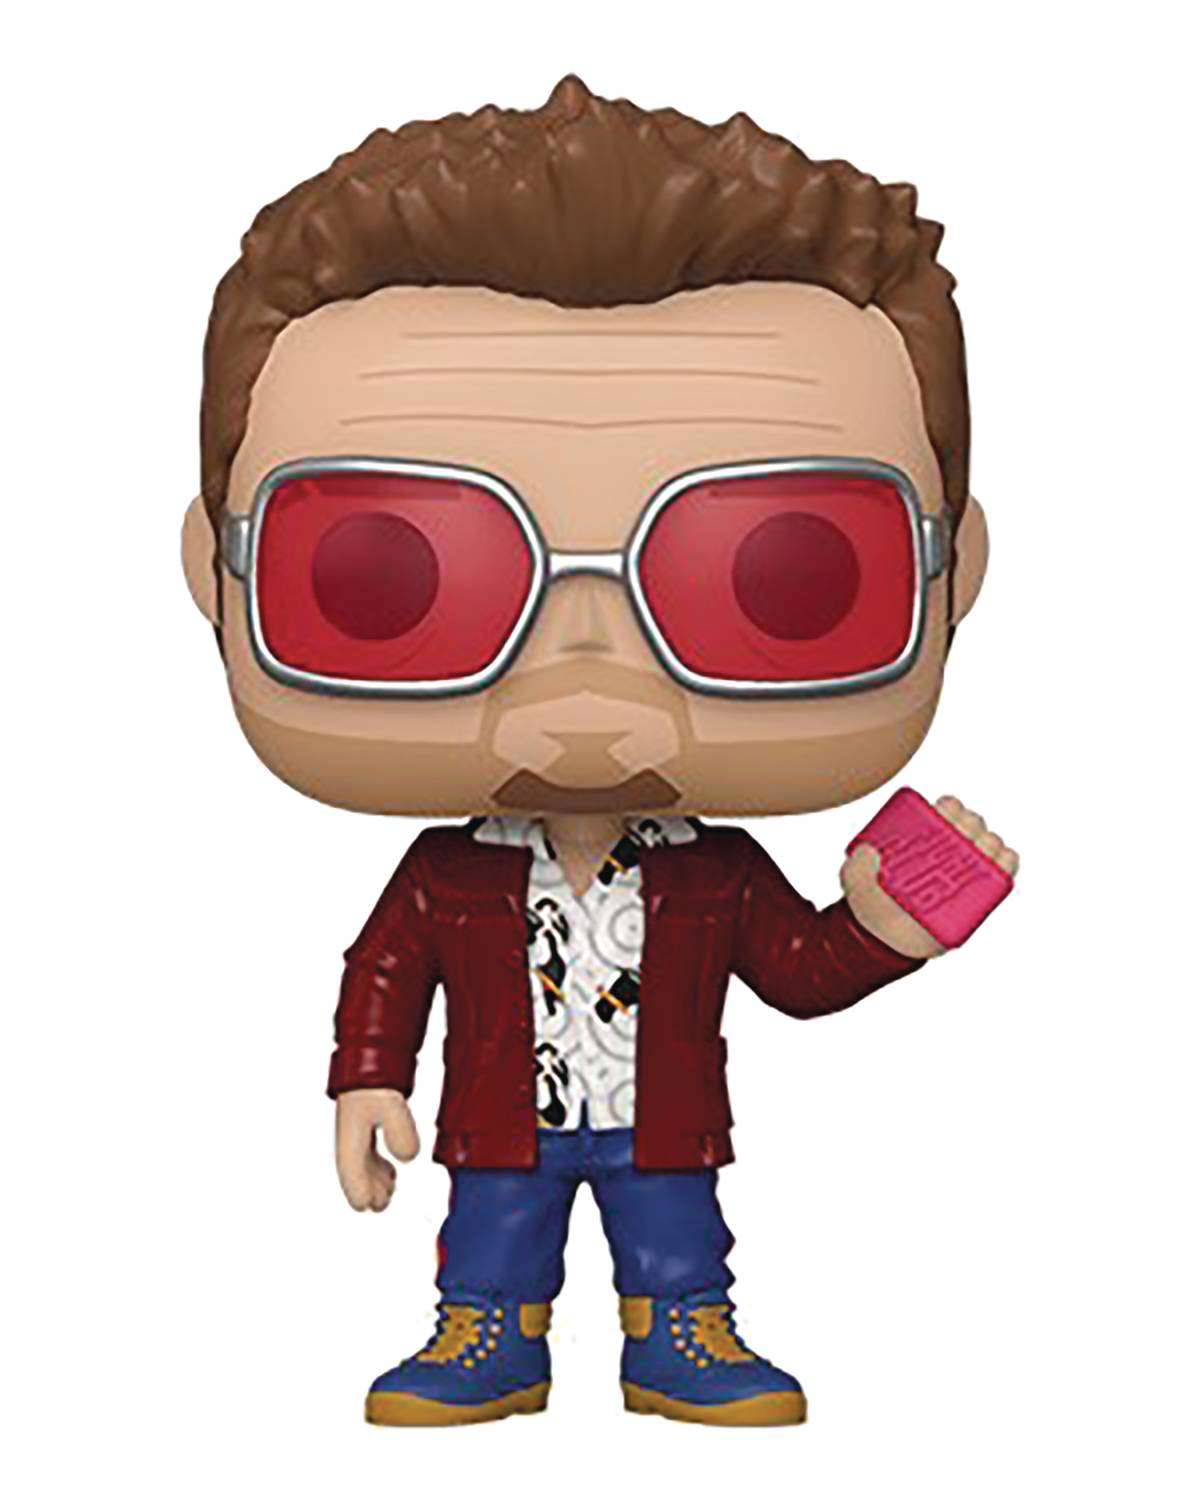 POP MOVIES FIGHT CLUB TYLER DURDEN W/BUDDY VIN FIG